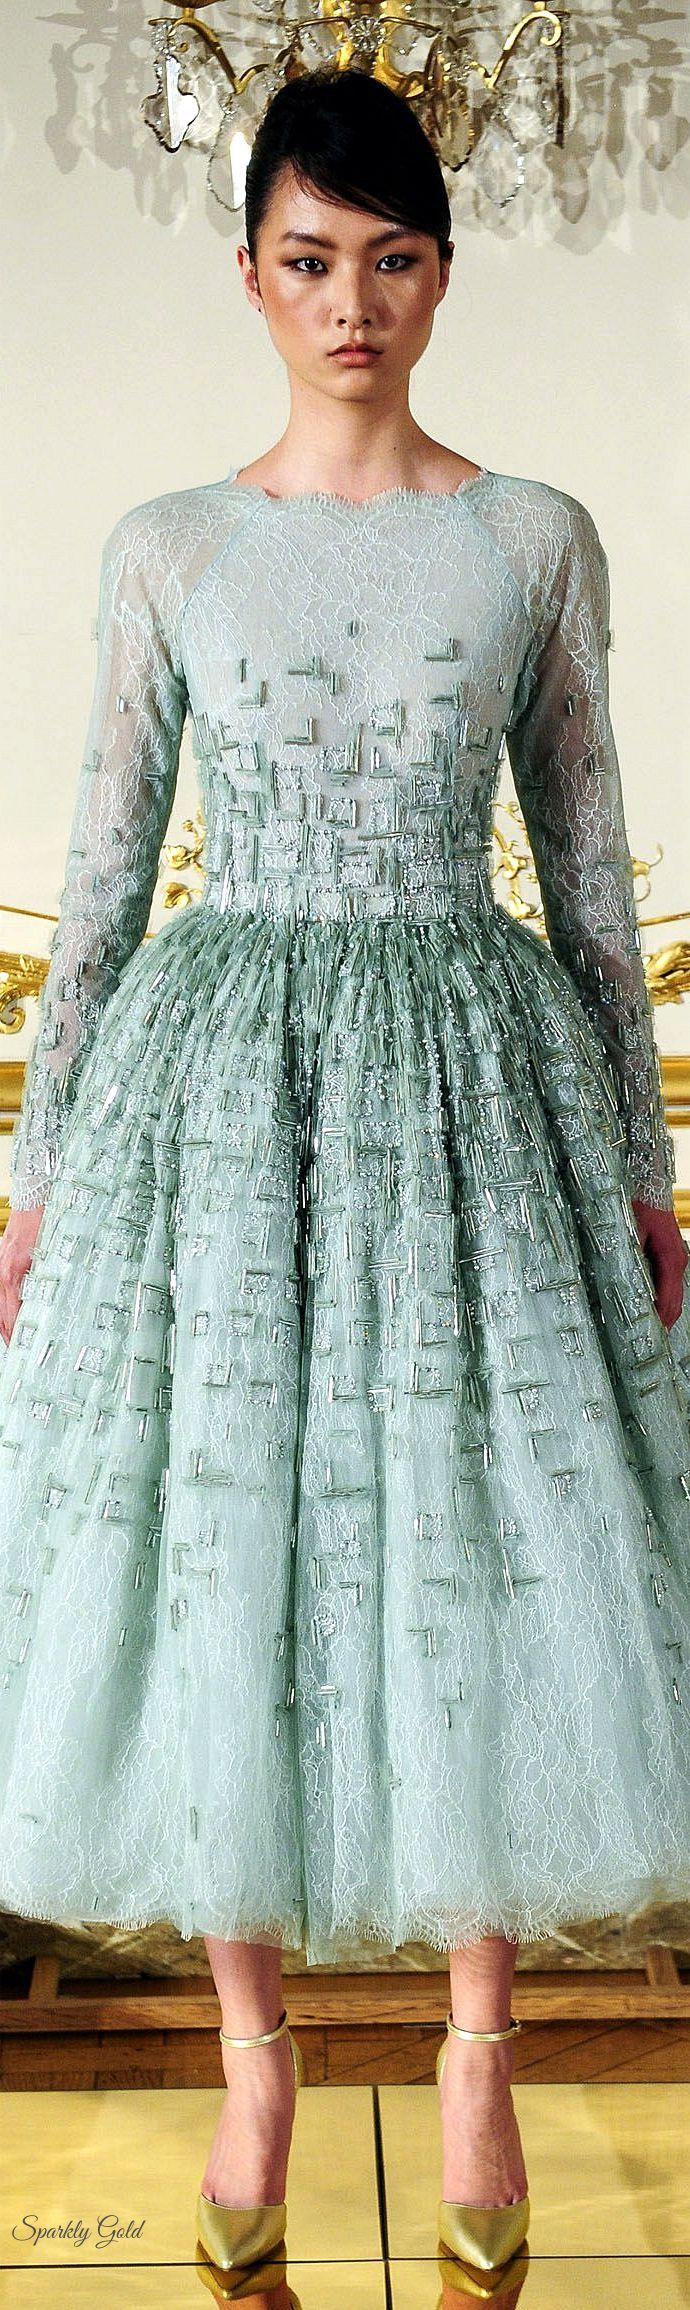 51 best Rami al-Ali images on Pinterest | Evening gowns, High ...